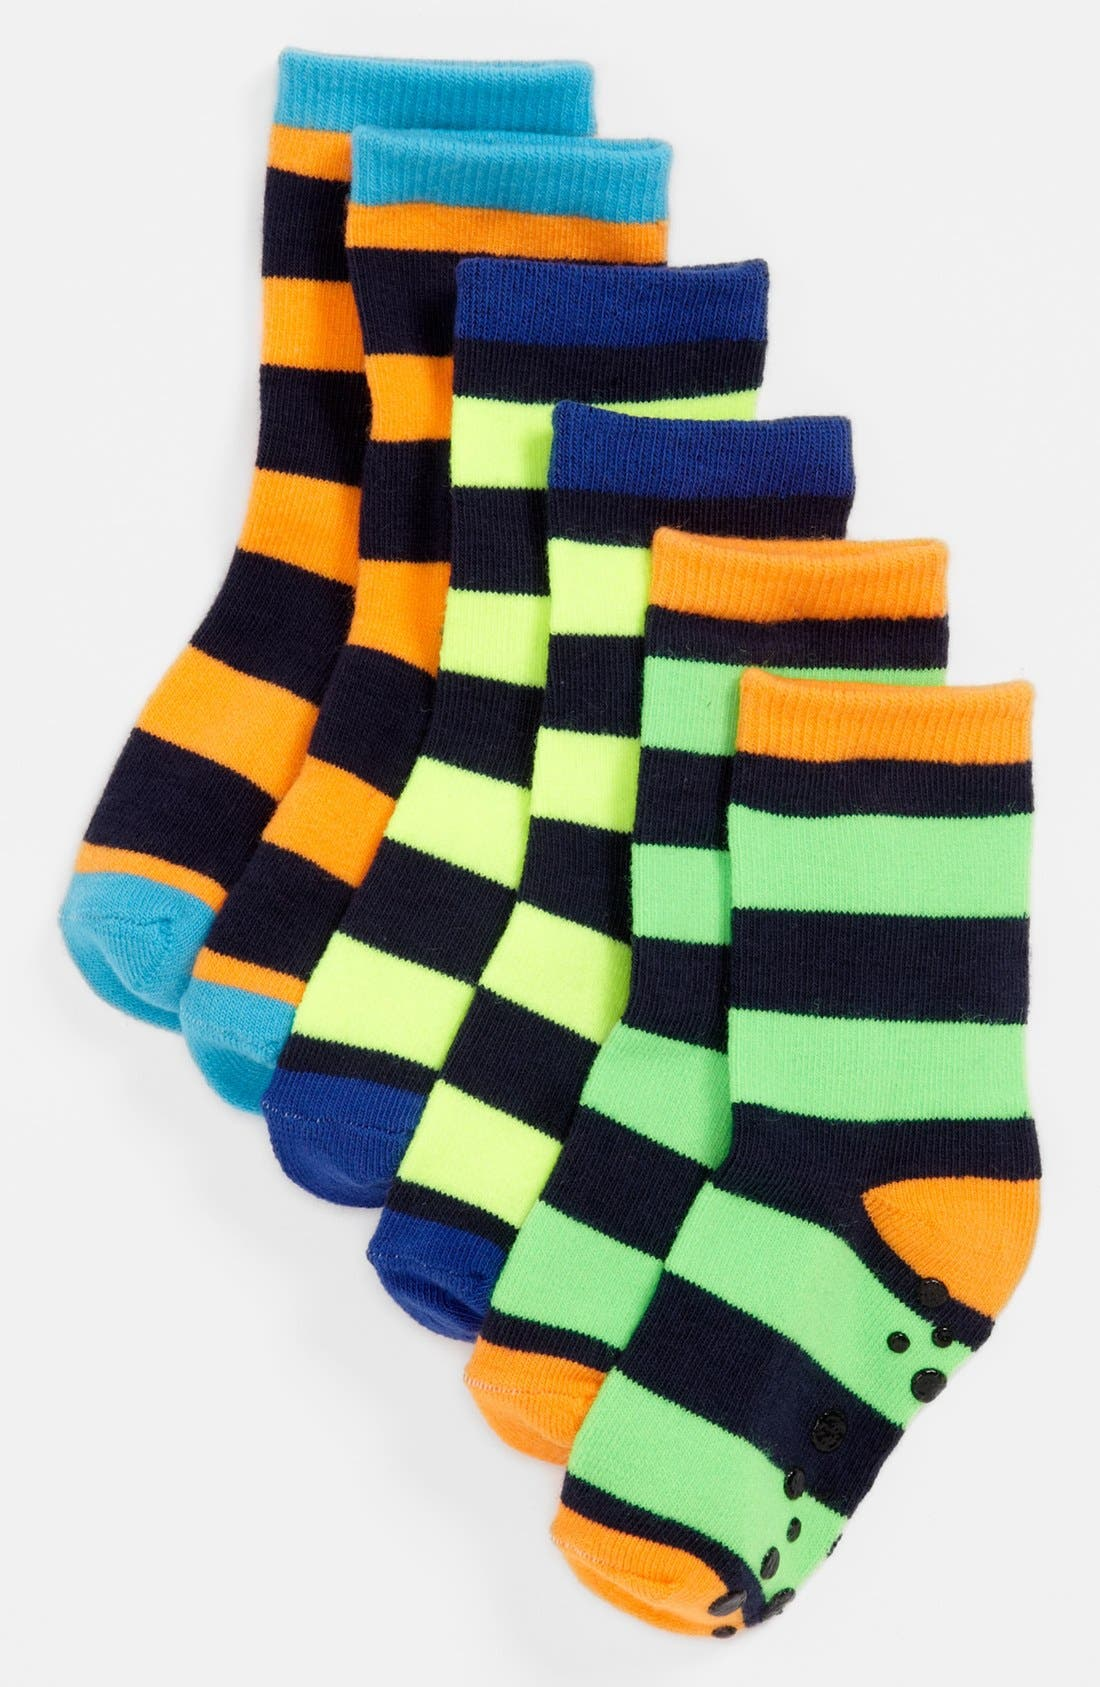 Alternate Image 1 Selected - Nordstrom 'Neon Stripes' Crew Socks (3-Pack) (Toddler, Little Boys & Big Boys)